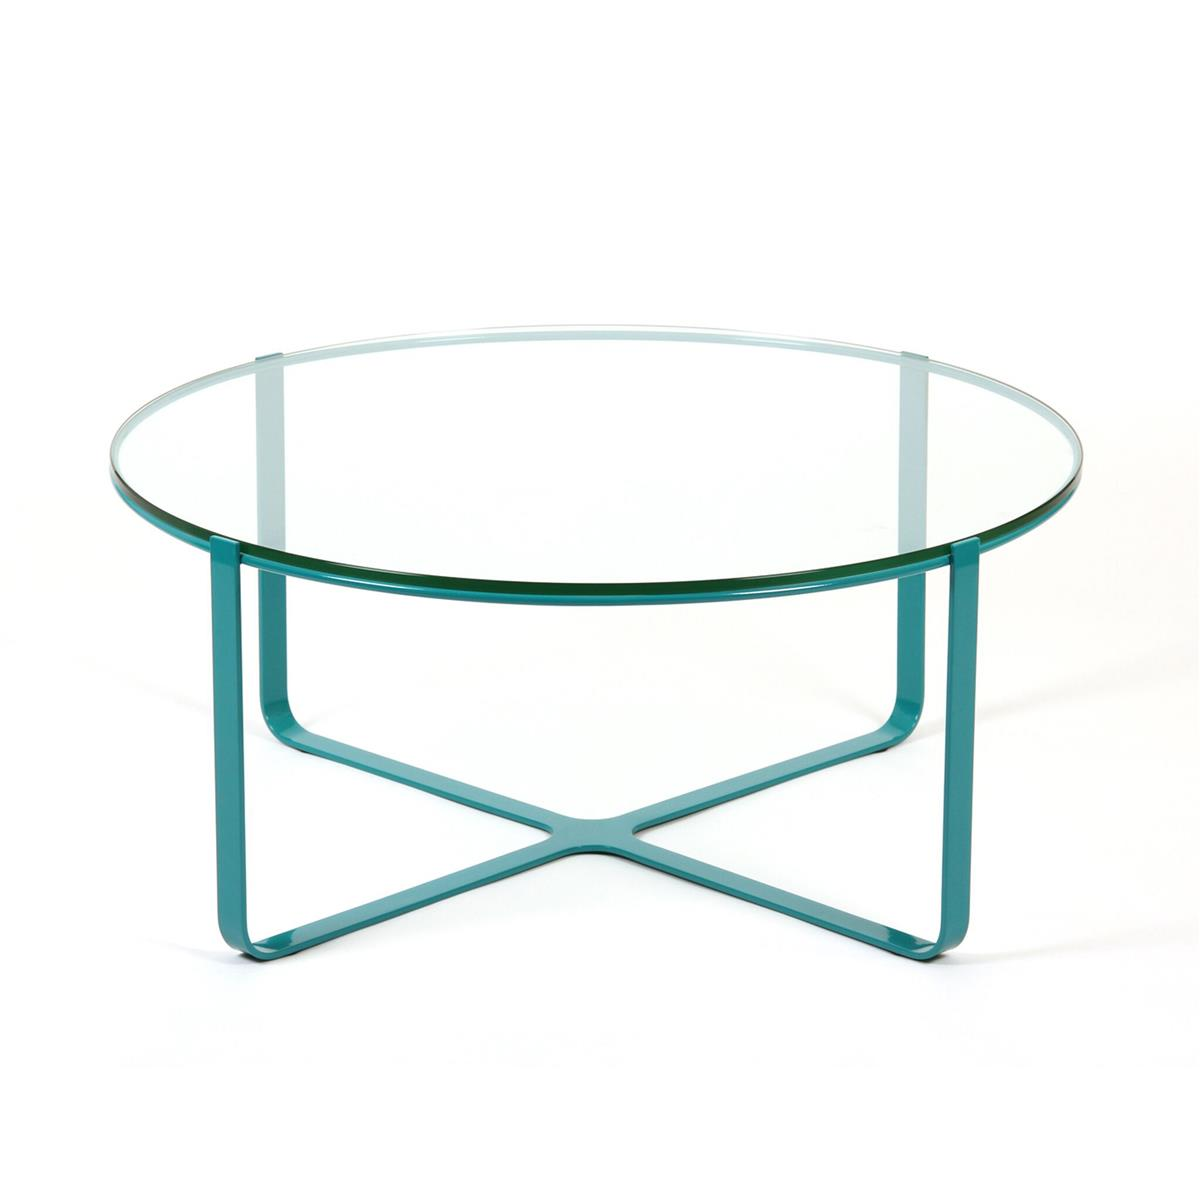 Trace Circular Table Ø60 x H35 - Pastel Blue & glass